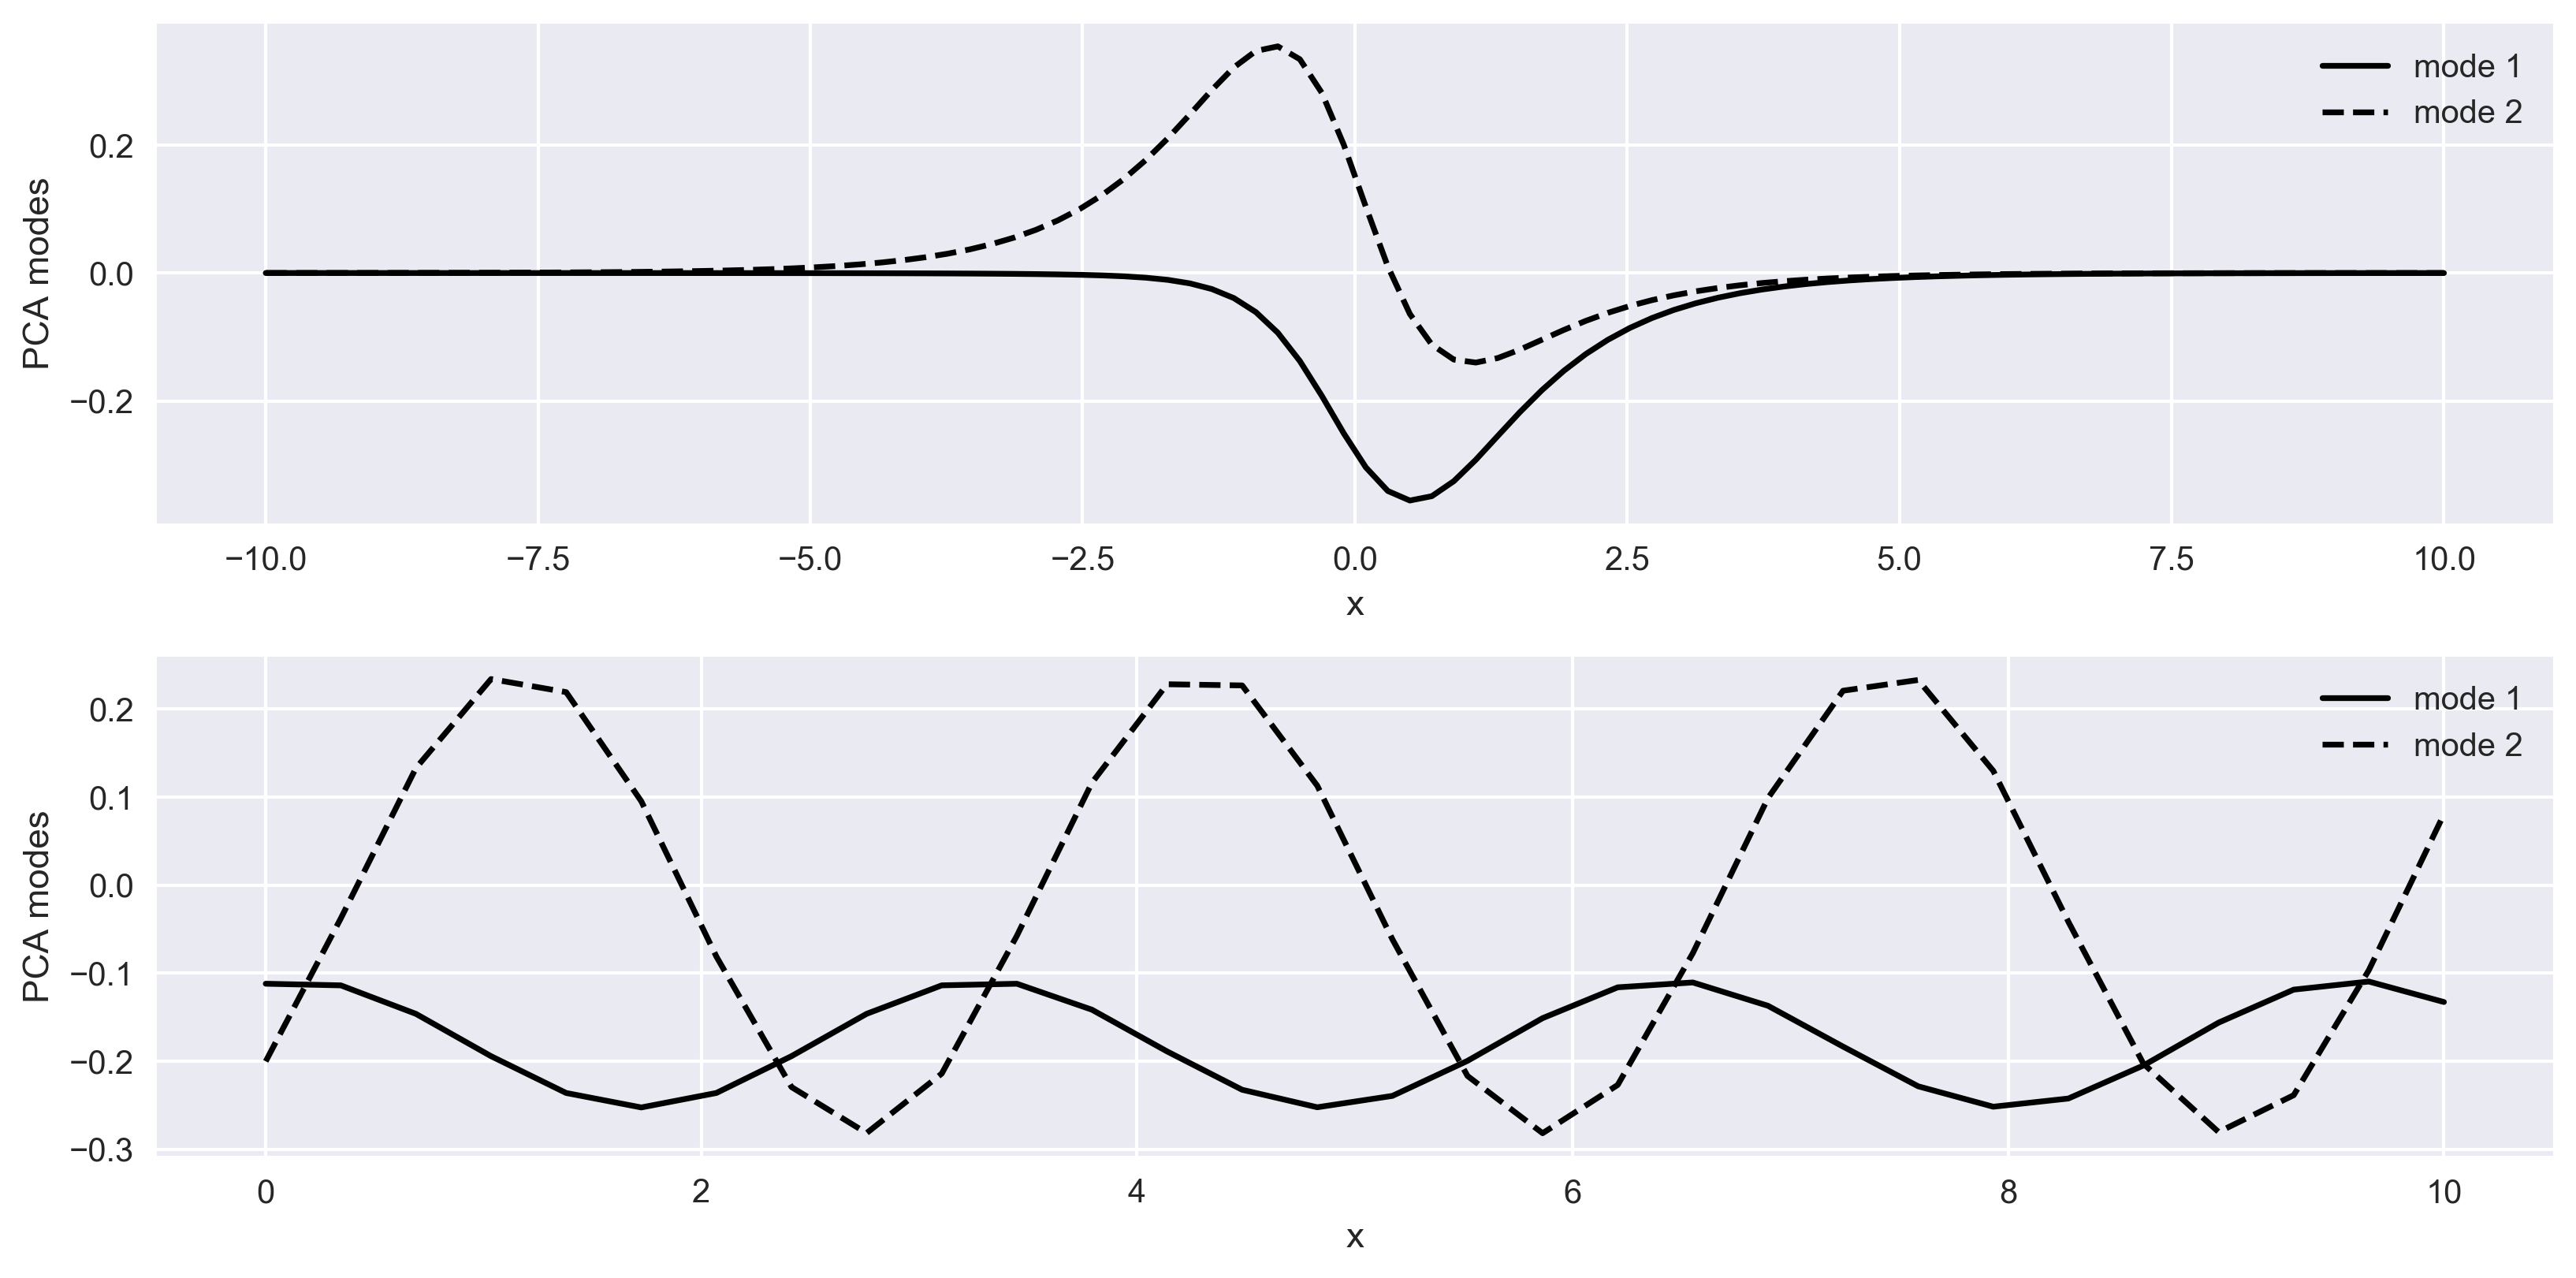 Figure 3: Space and time behaviour of a representation of space-time dynamical system deduced by principal component analysis